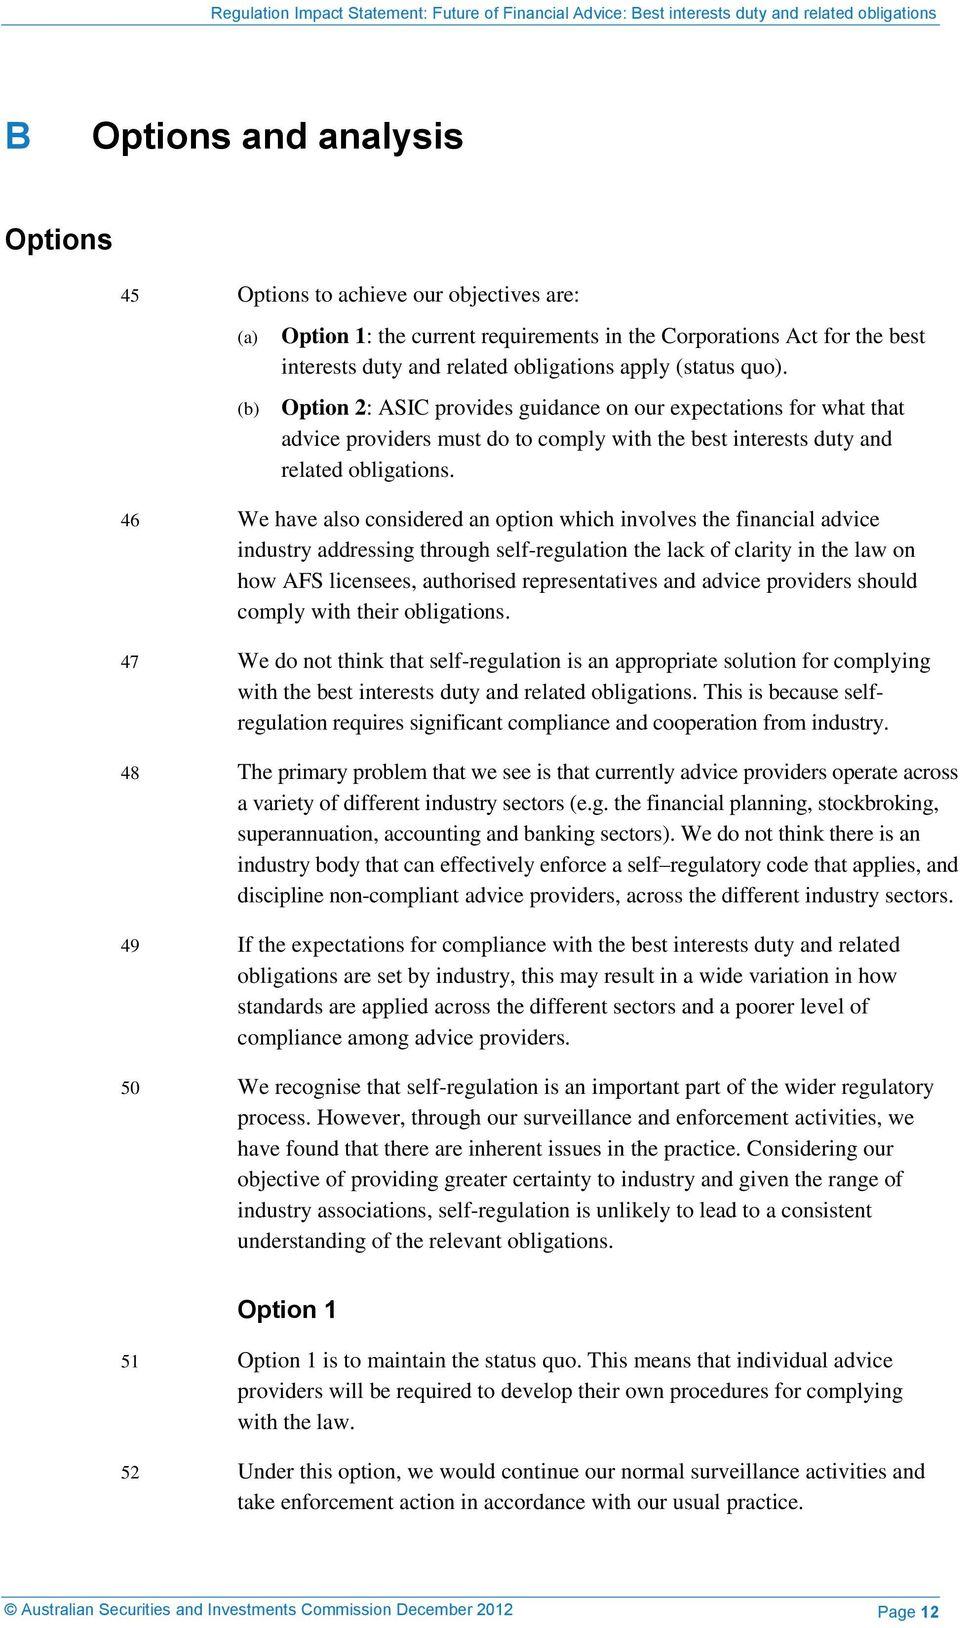 46 We have also considered an option which involves the financial advice industry addressing through self-regulation the lack of clarity in the law on how AFS licensees, authorised representatives